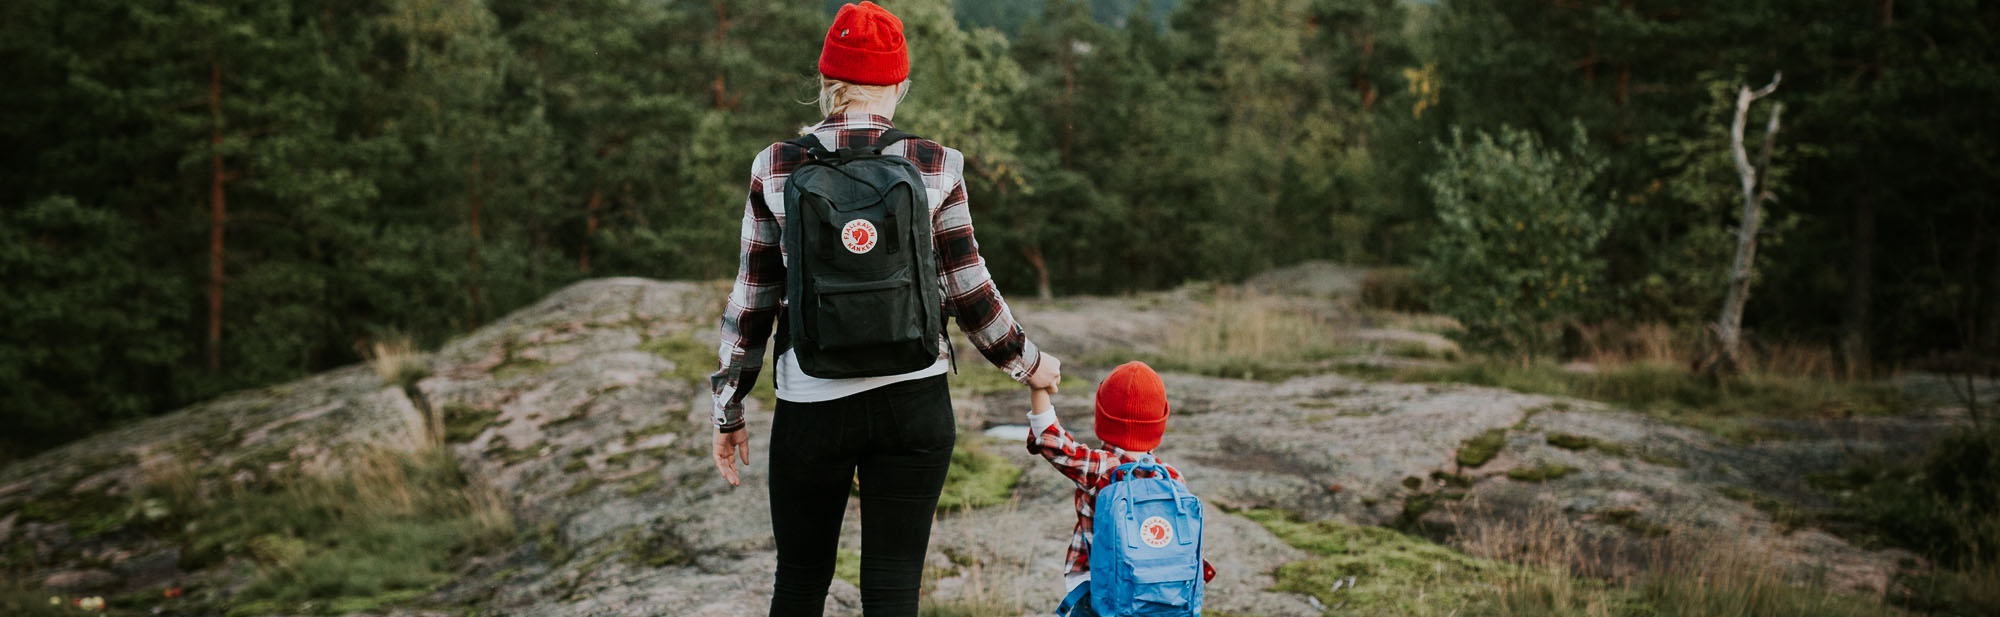 A mother and child walking hand in hand in a forest.